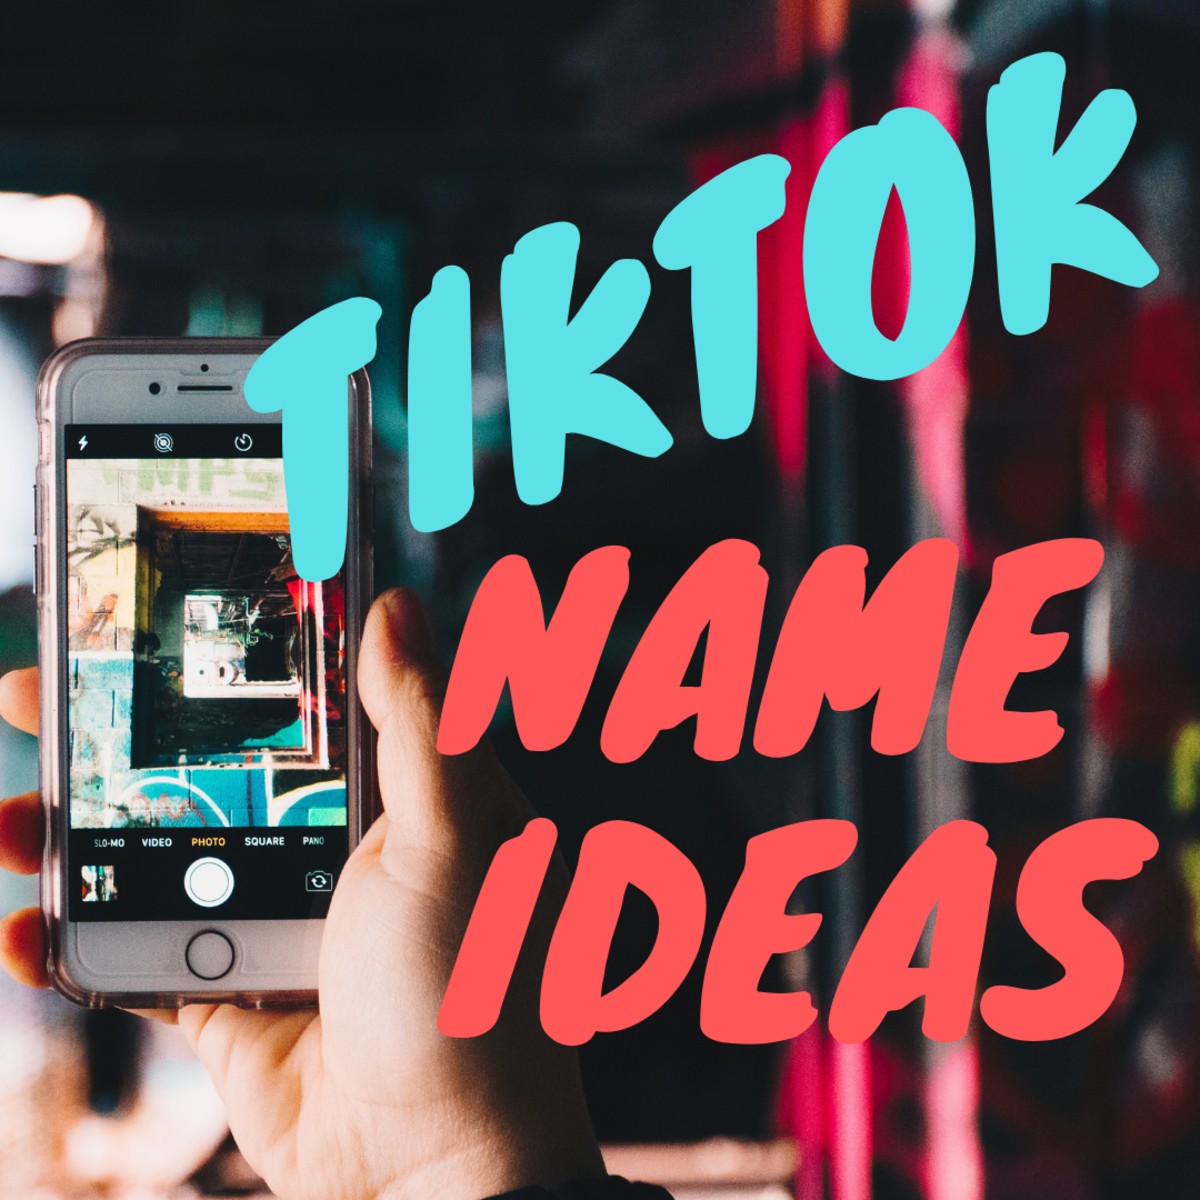 200+ TikTok Username Ideas and Name Generator